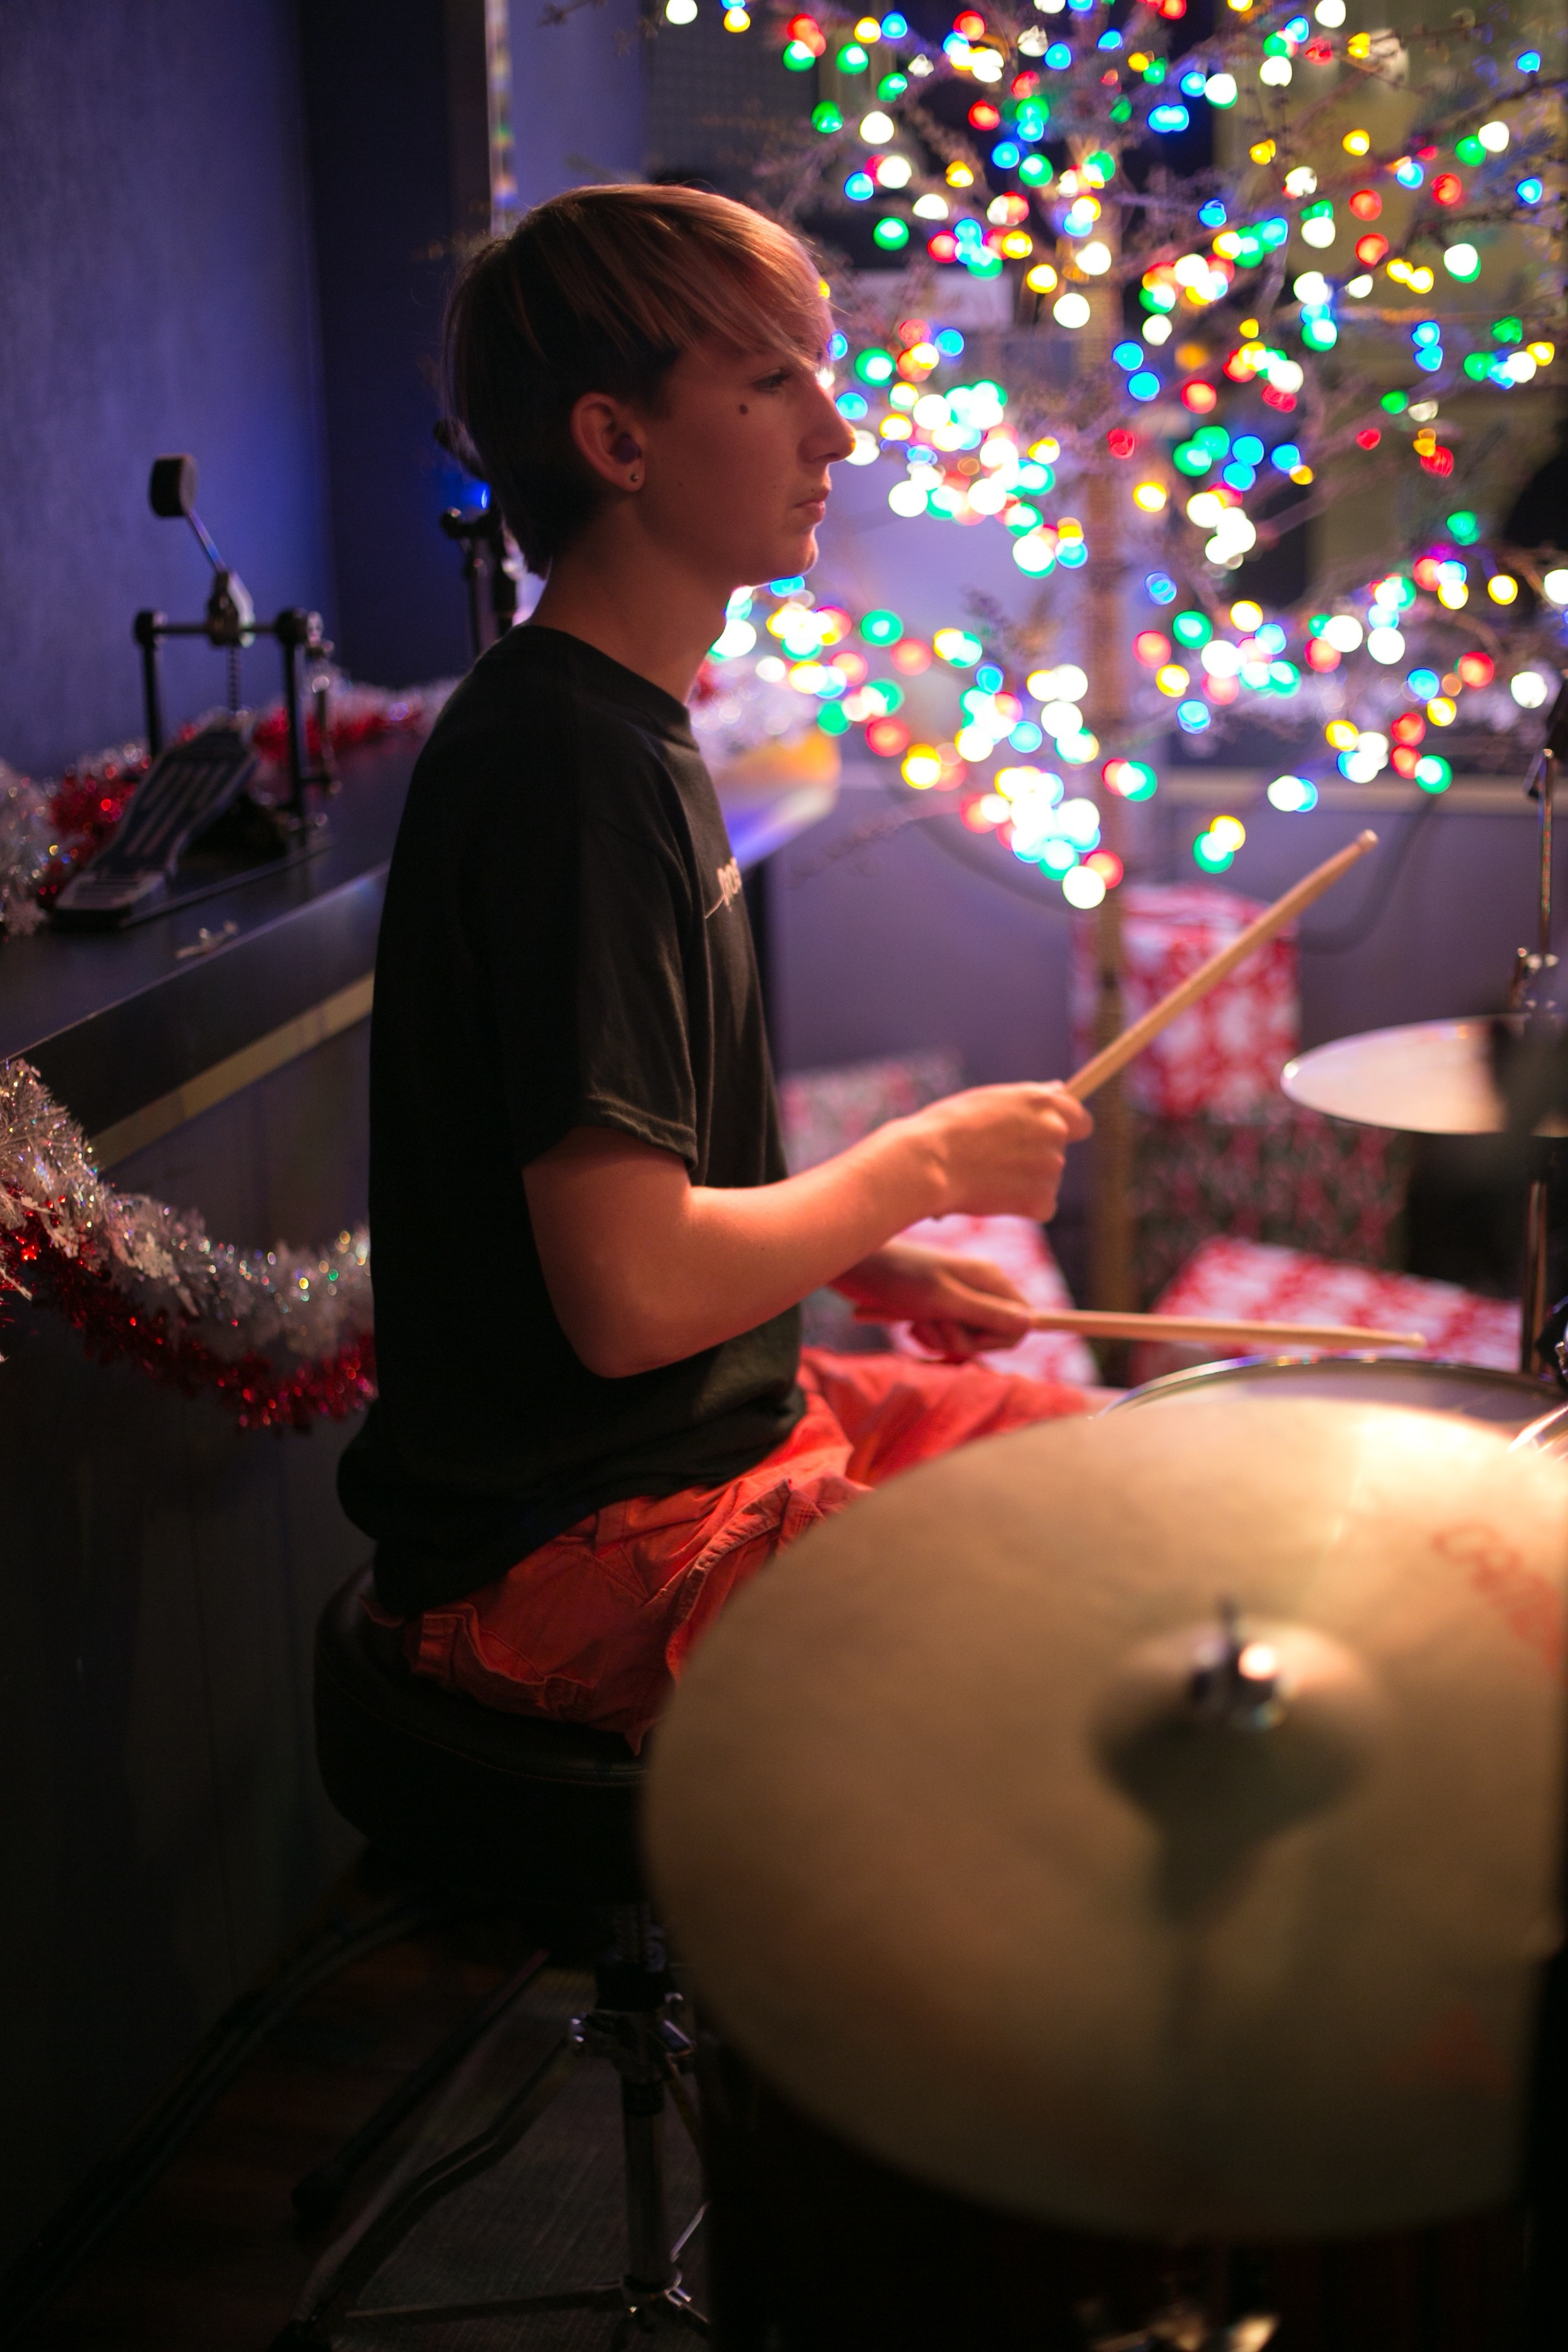 Liam on drums @ Boardwalk Bowl